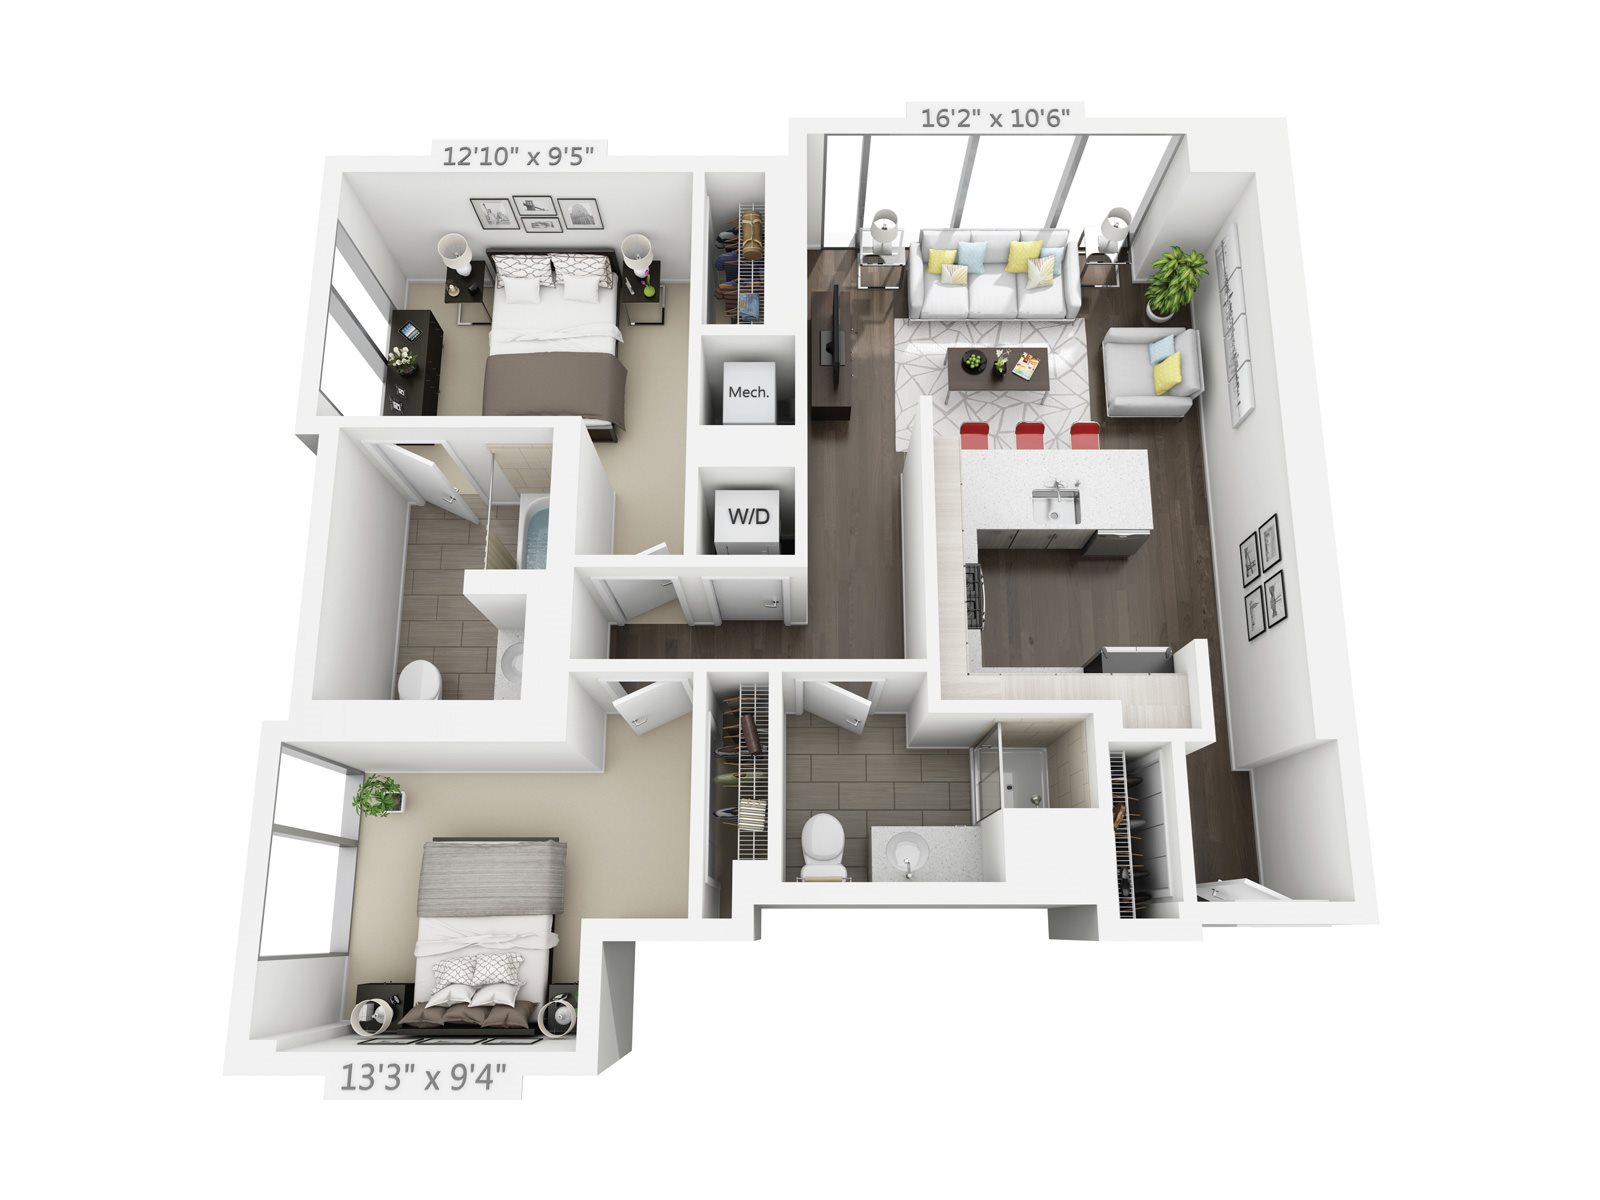 2 BEDROOM/2 BATH C4 Floor Plan 10